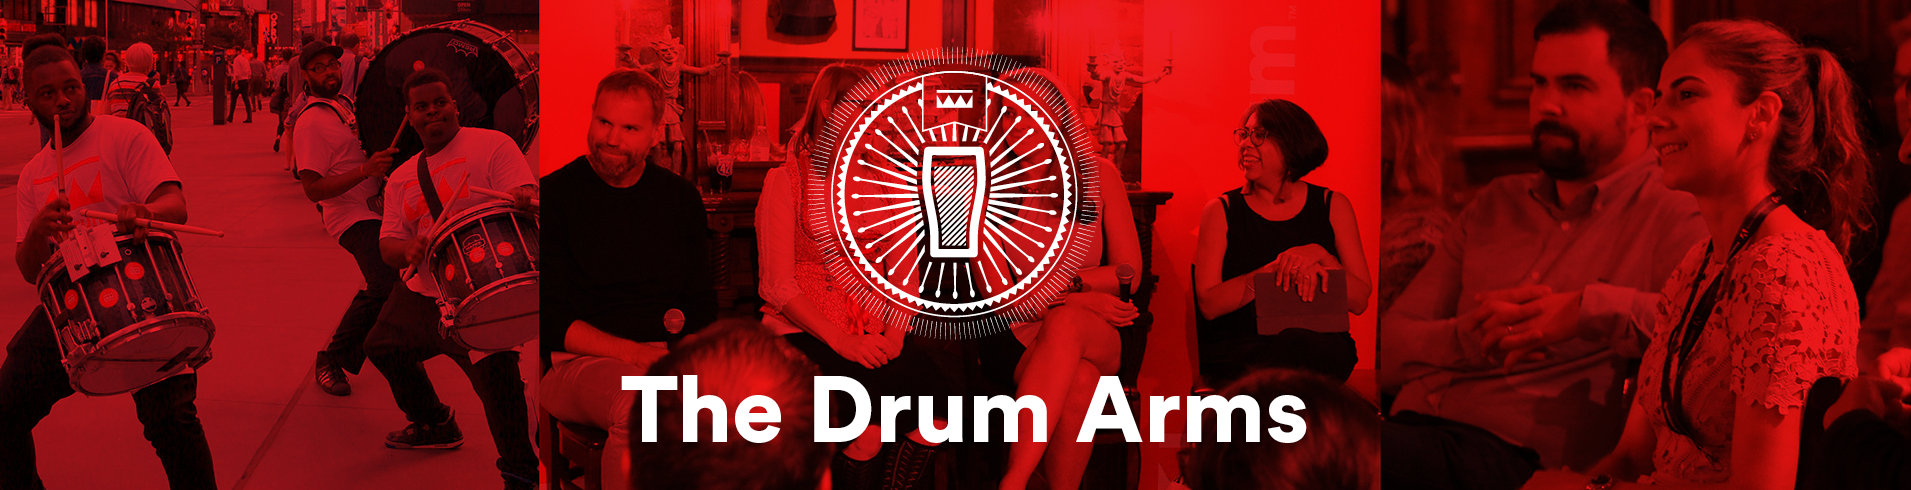 The Drum Arms